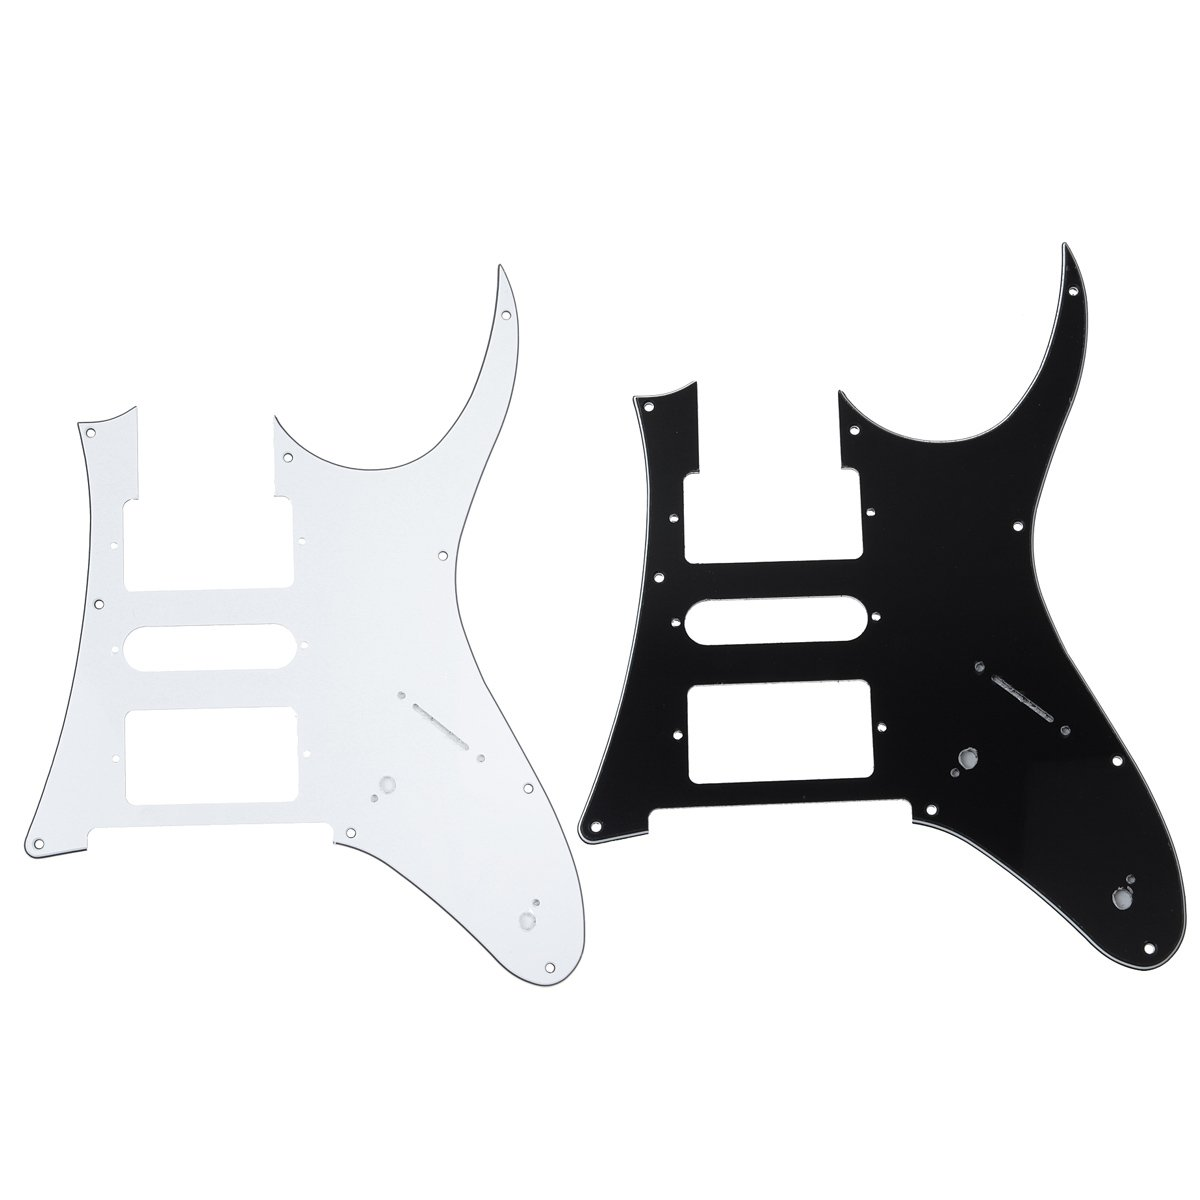 Kmise OT0155 2-Piece Different Electric Guitar Pickguard for Ibanez RG 750 Replacement